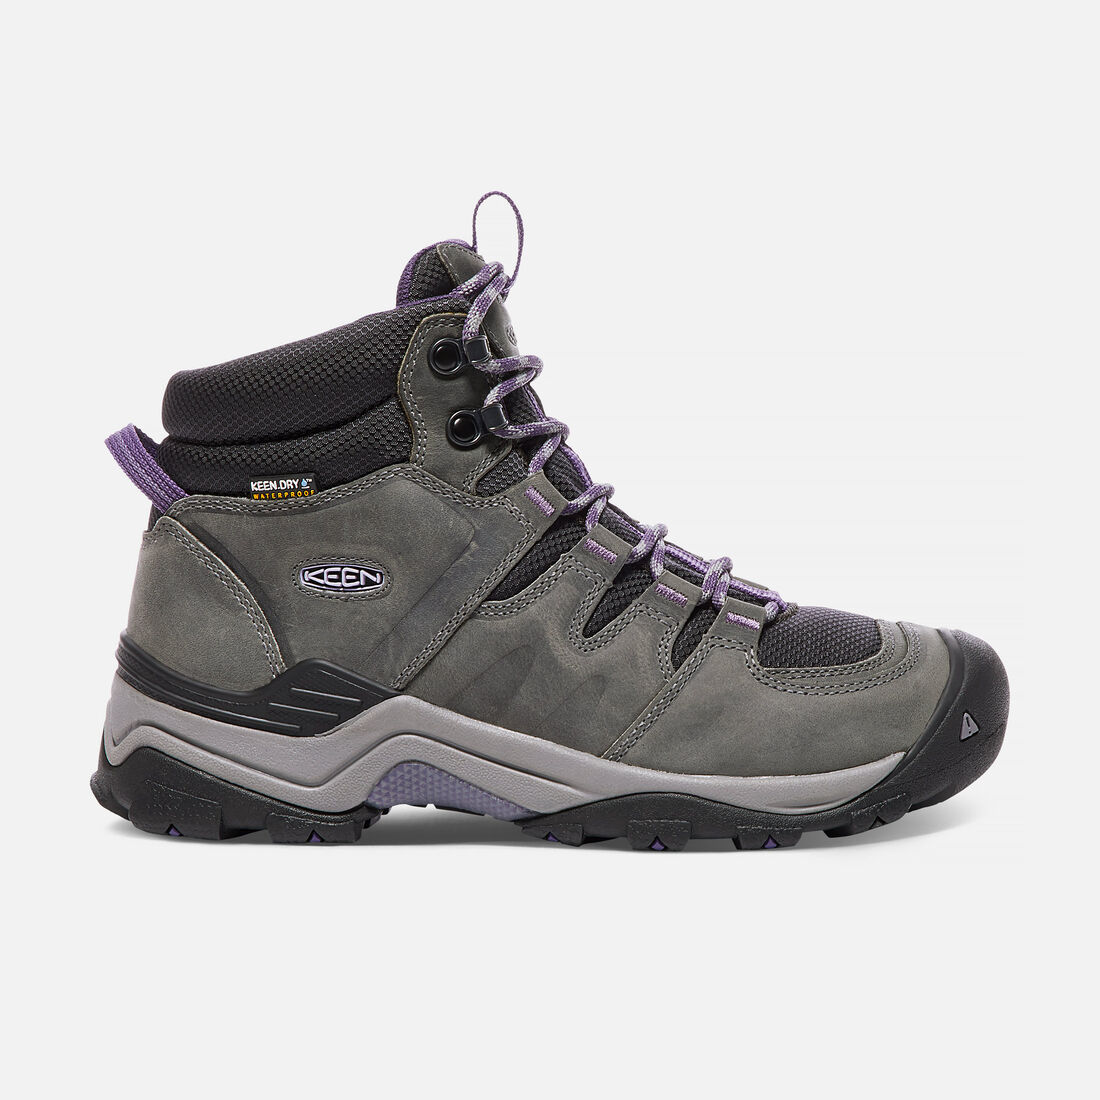 Women's Gypsum II Waterproof Mid in Earl Grey/Purple Plumeria - large view.